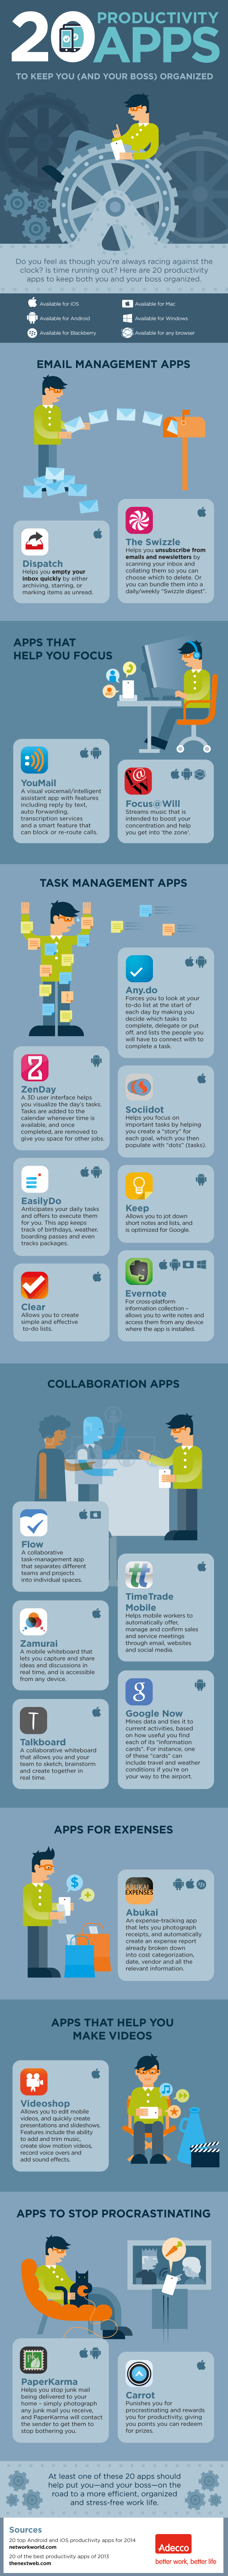 20 Productivity Apps To Keep You (And Your Boss) Organized